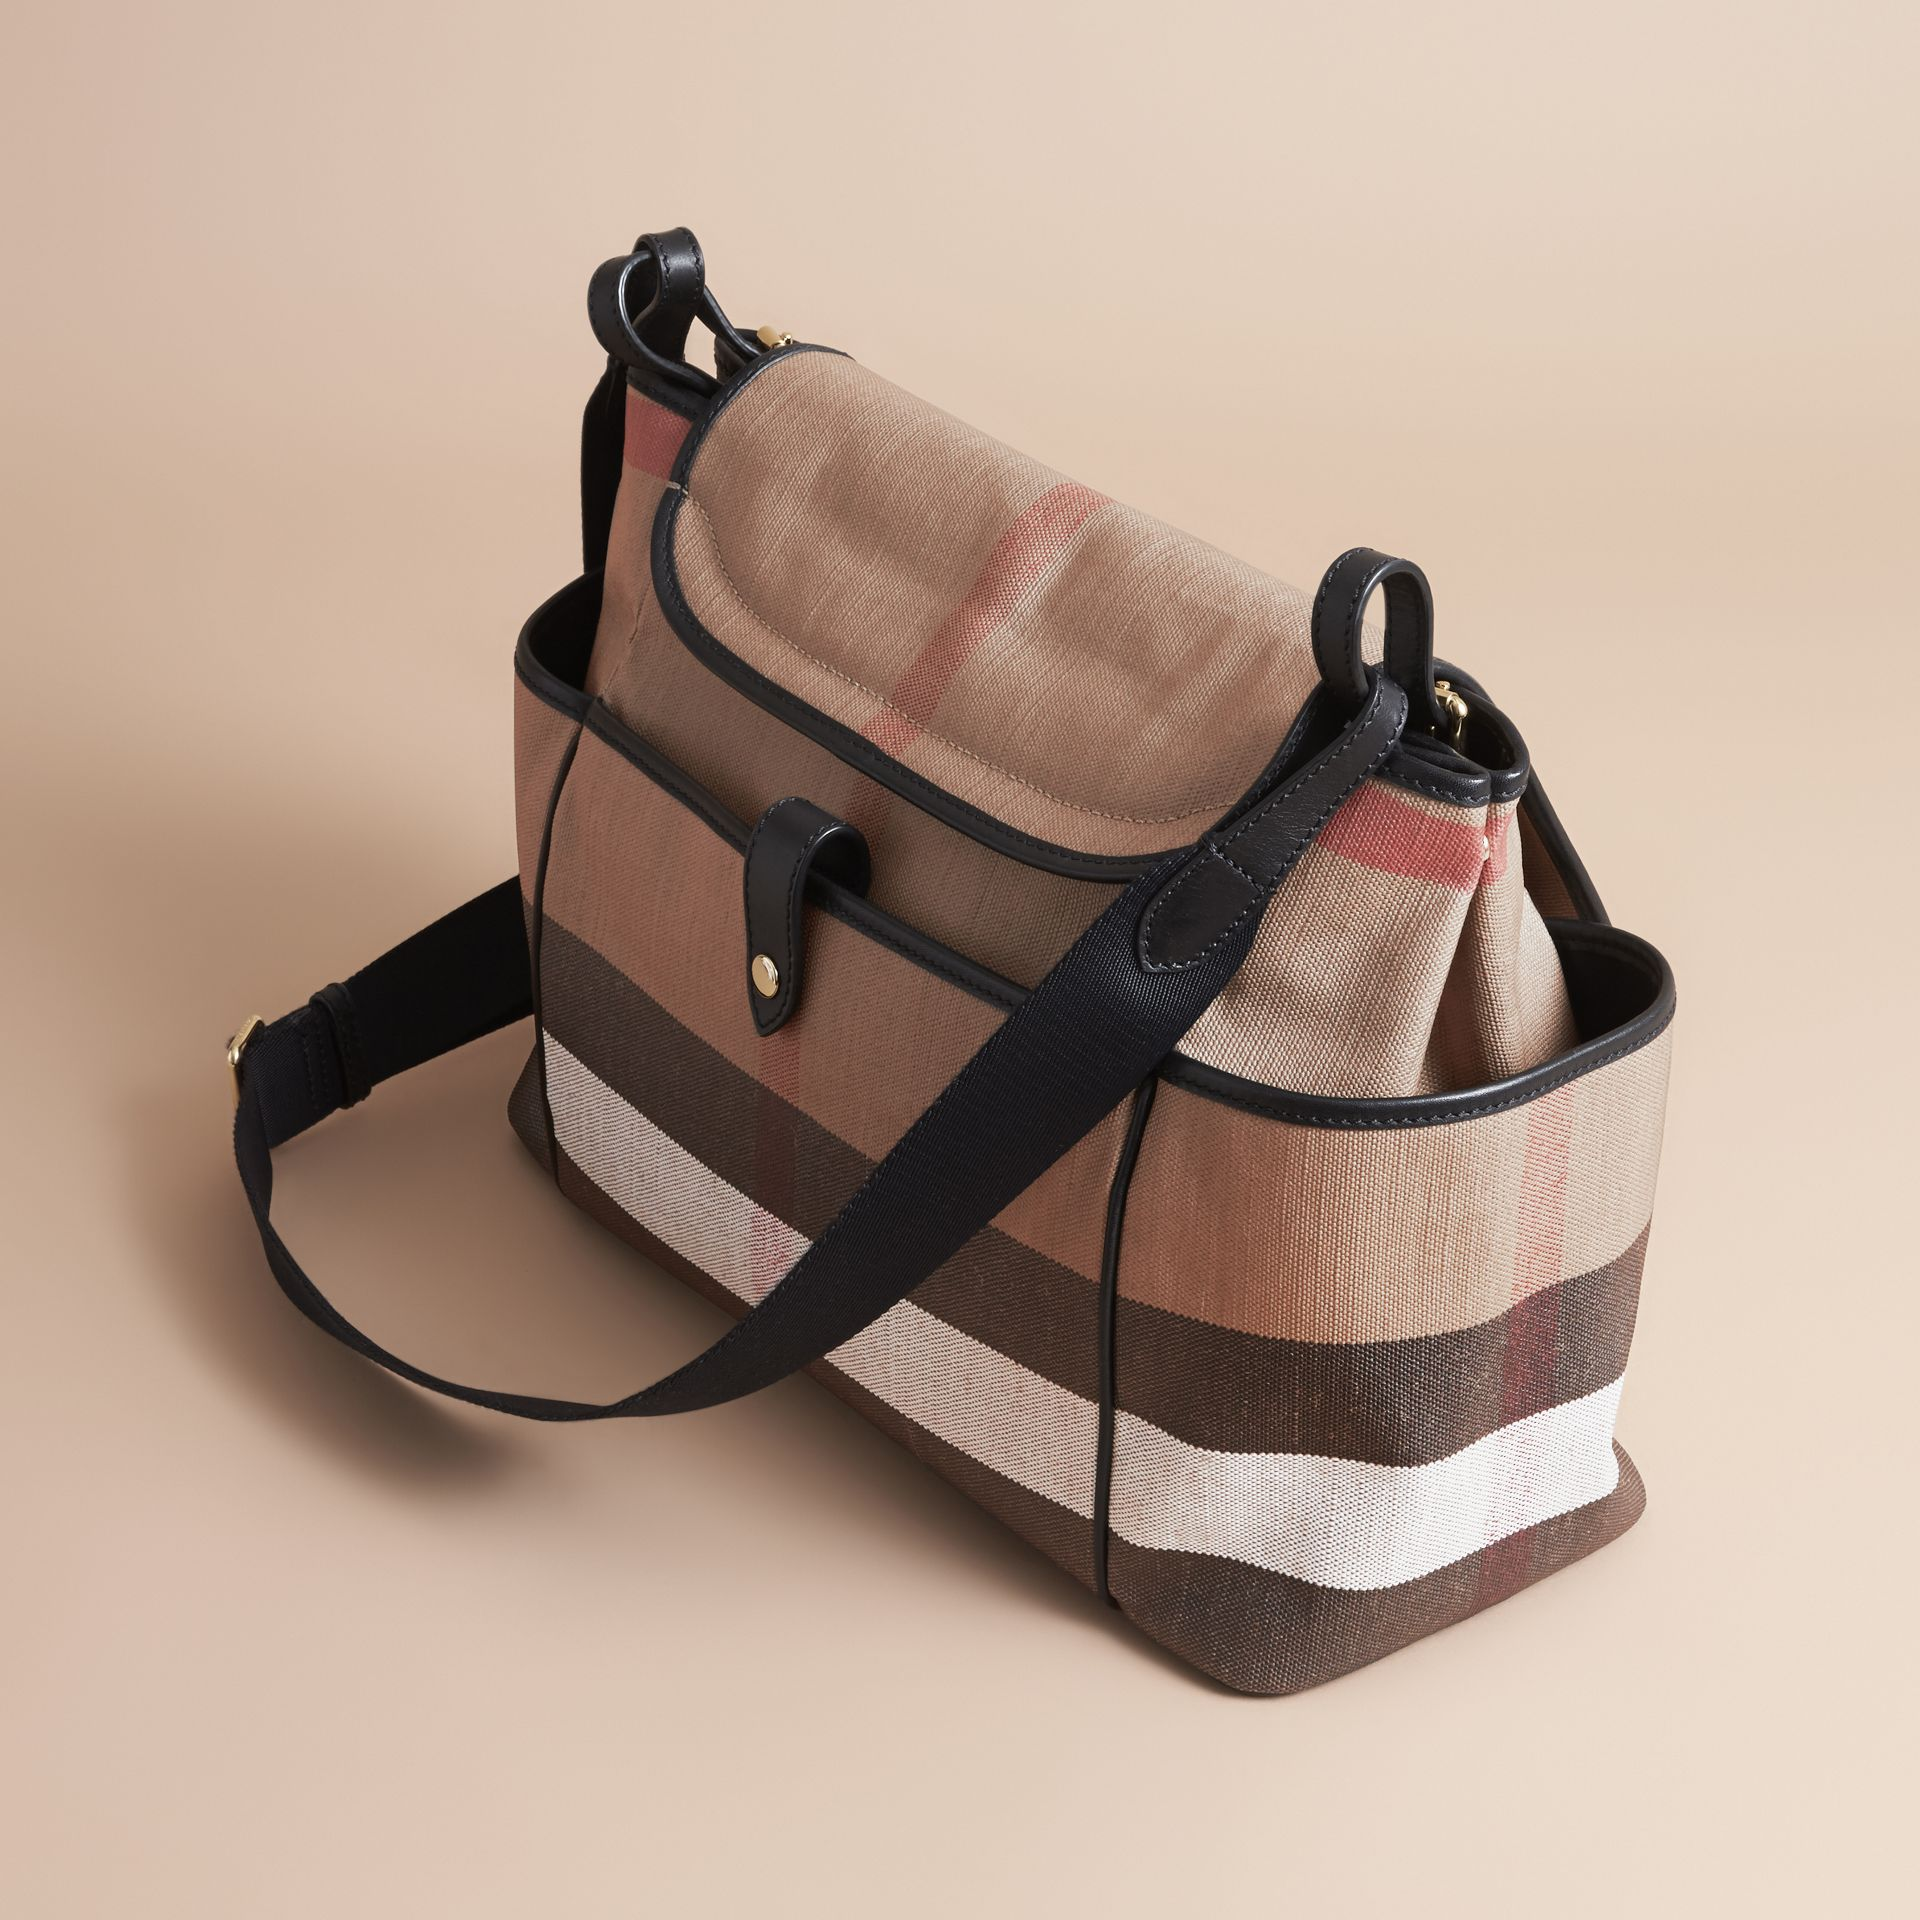 Canvas Check and Leather Baby Changing Shoulder Bag in Black - Children | Burberry United States - gallery image 2